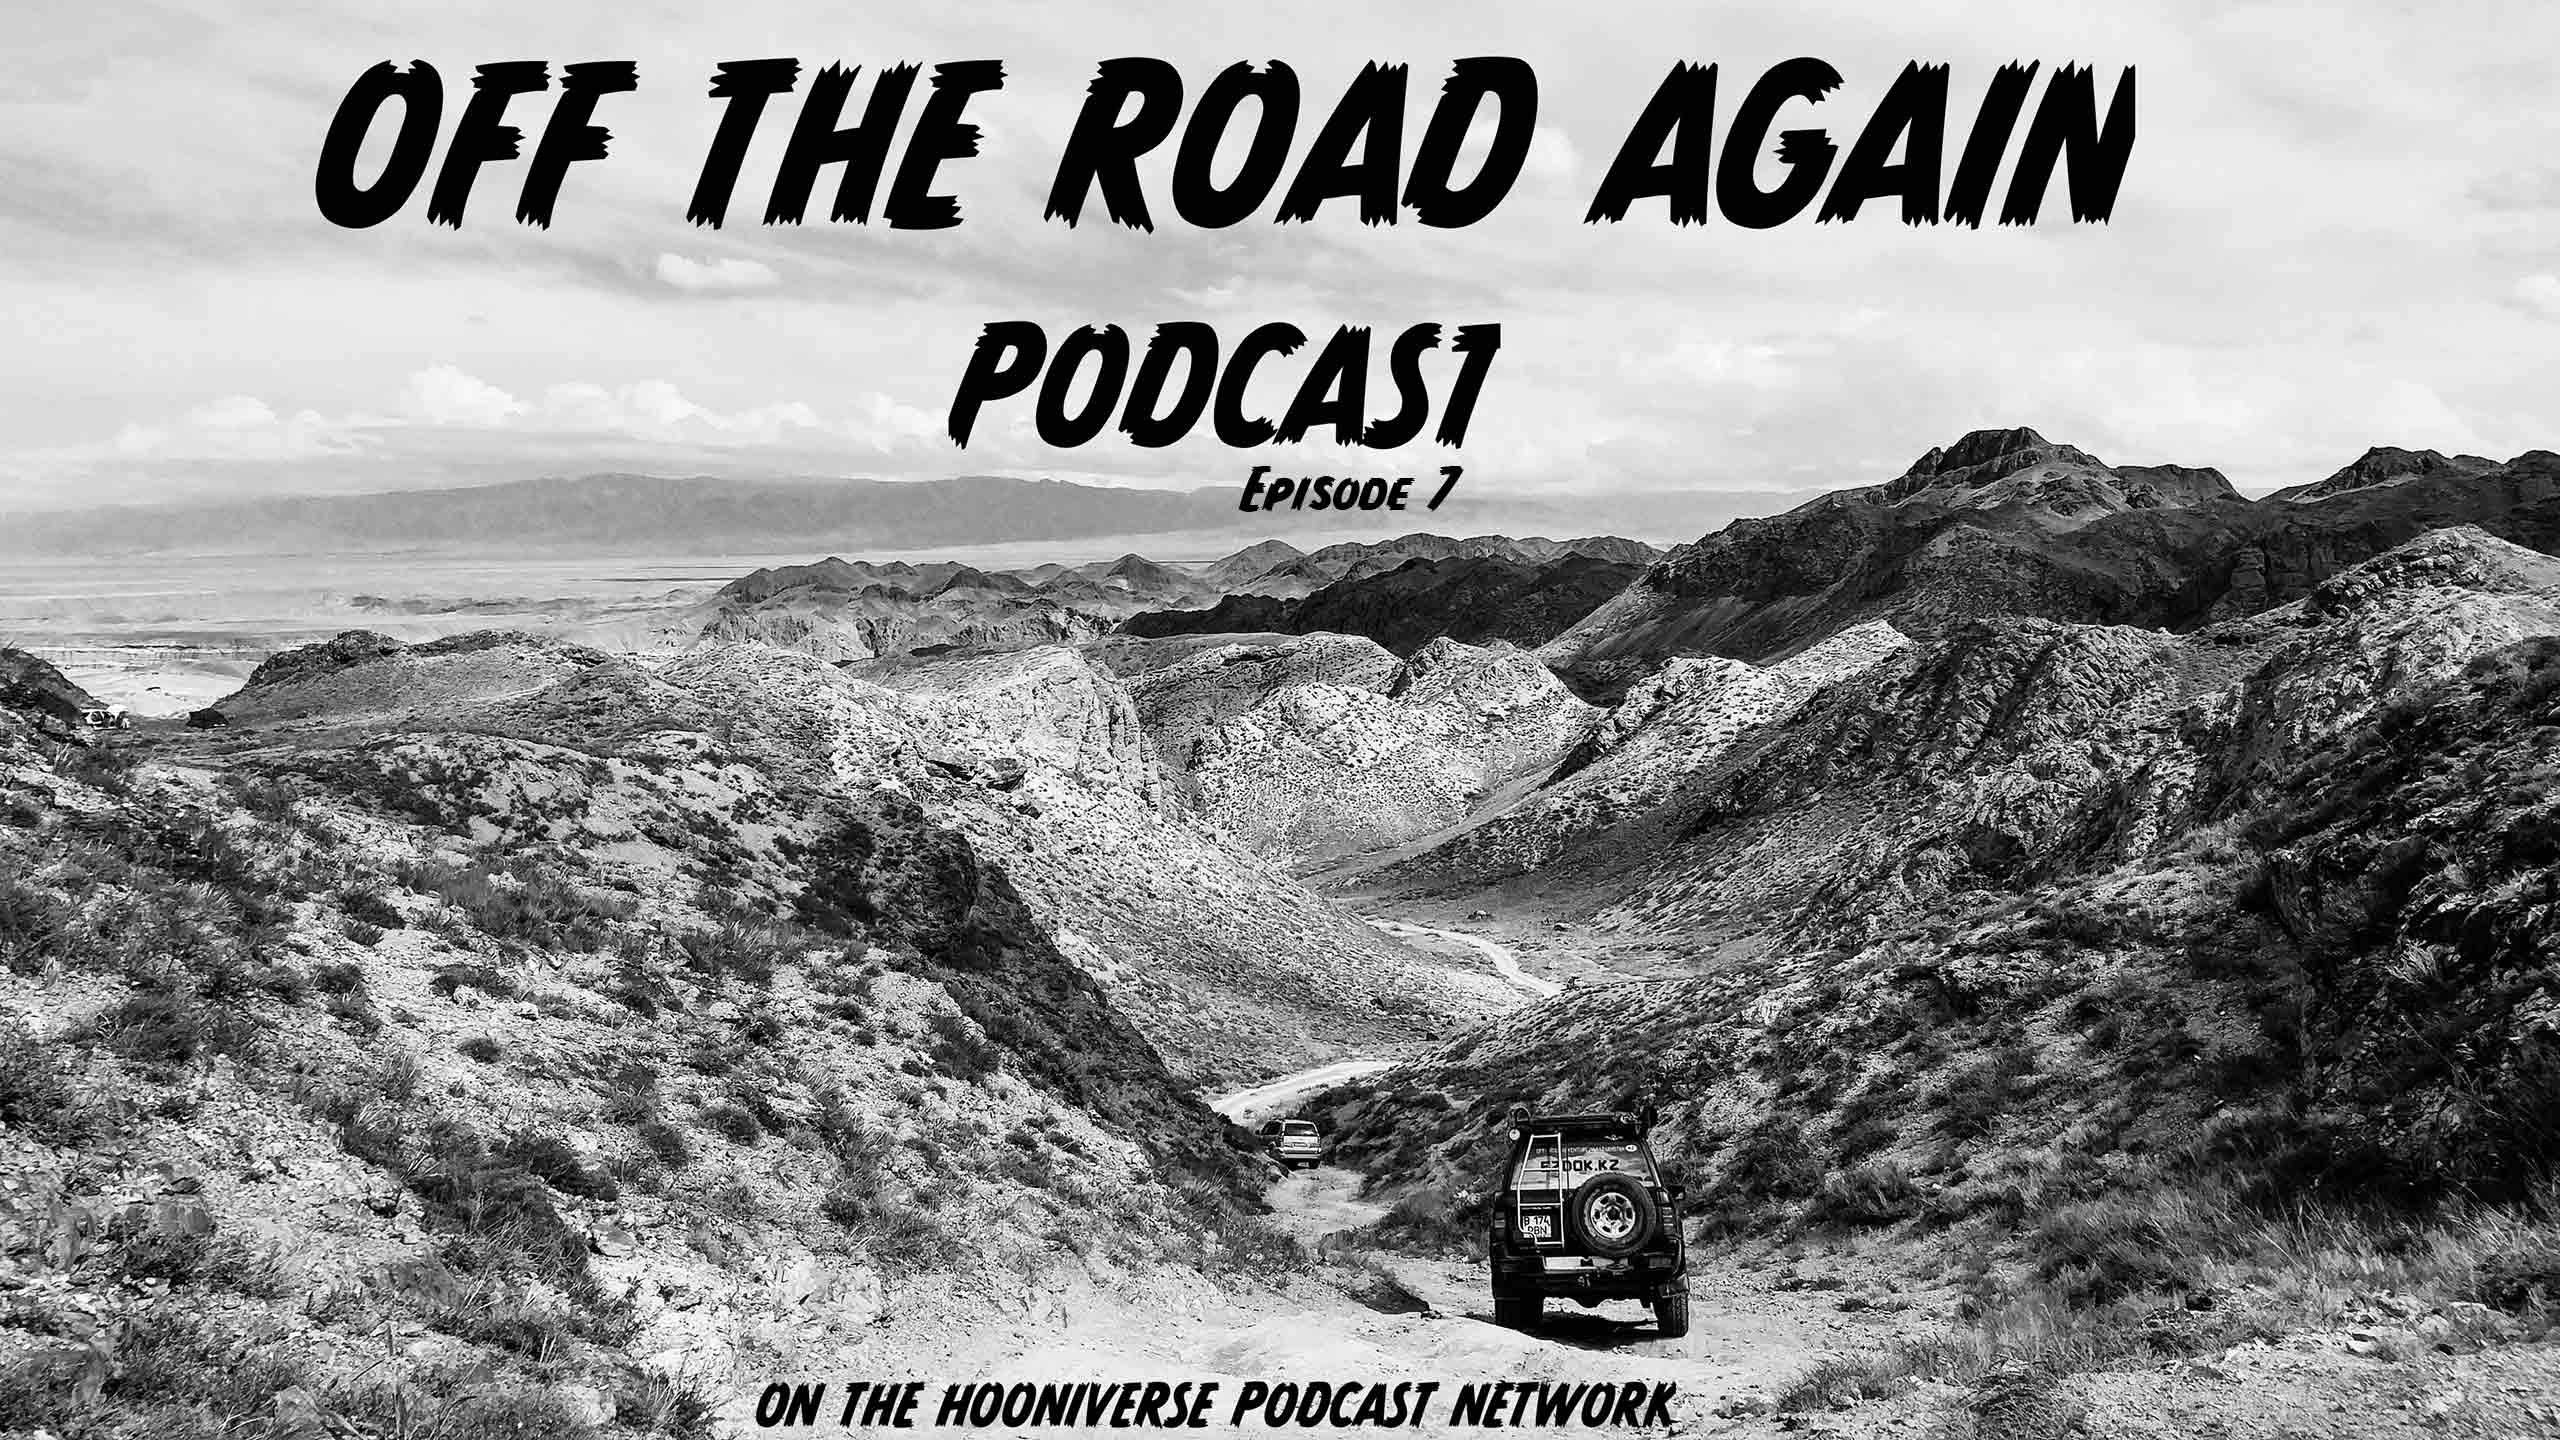 Off the Road Again - Episode 7